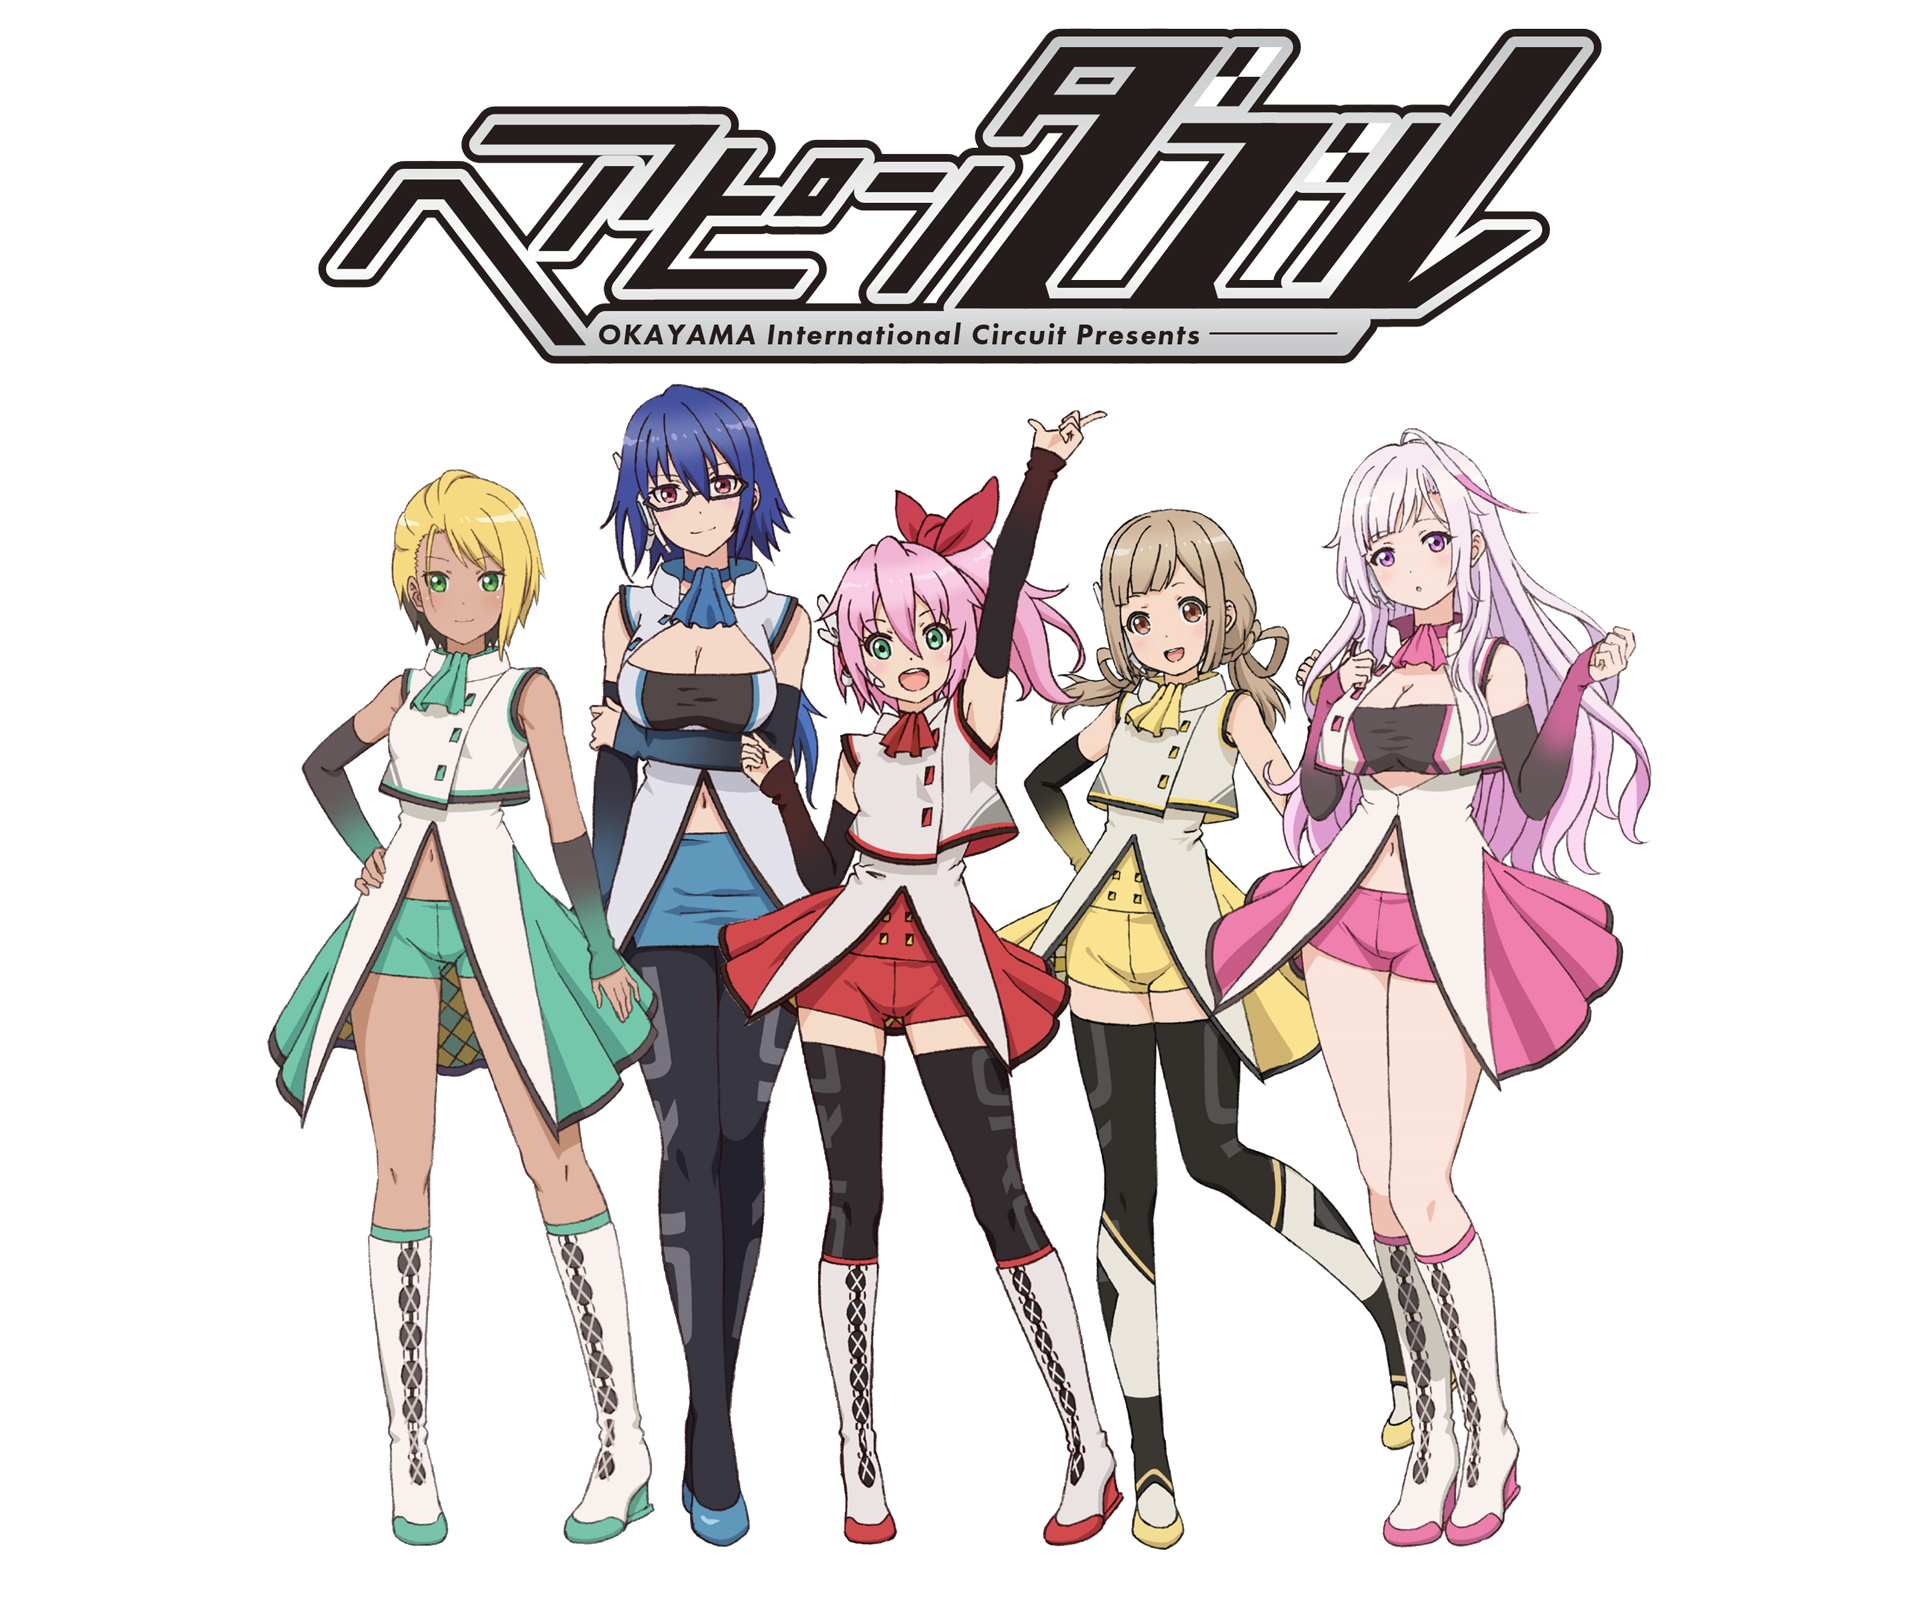 A key visual for the upcoming Hairpin Double short form anime, featuring the five main characters in their superhero idol outfits.